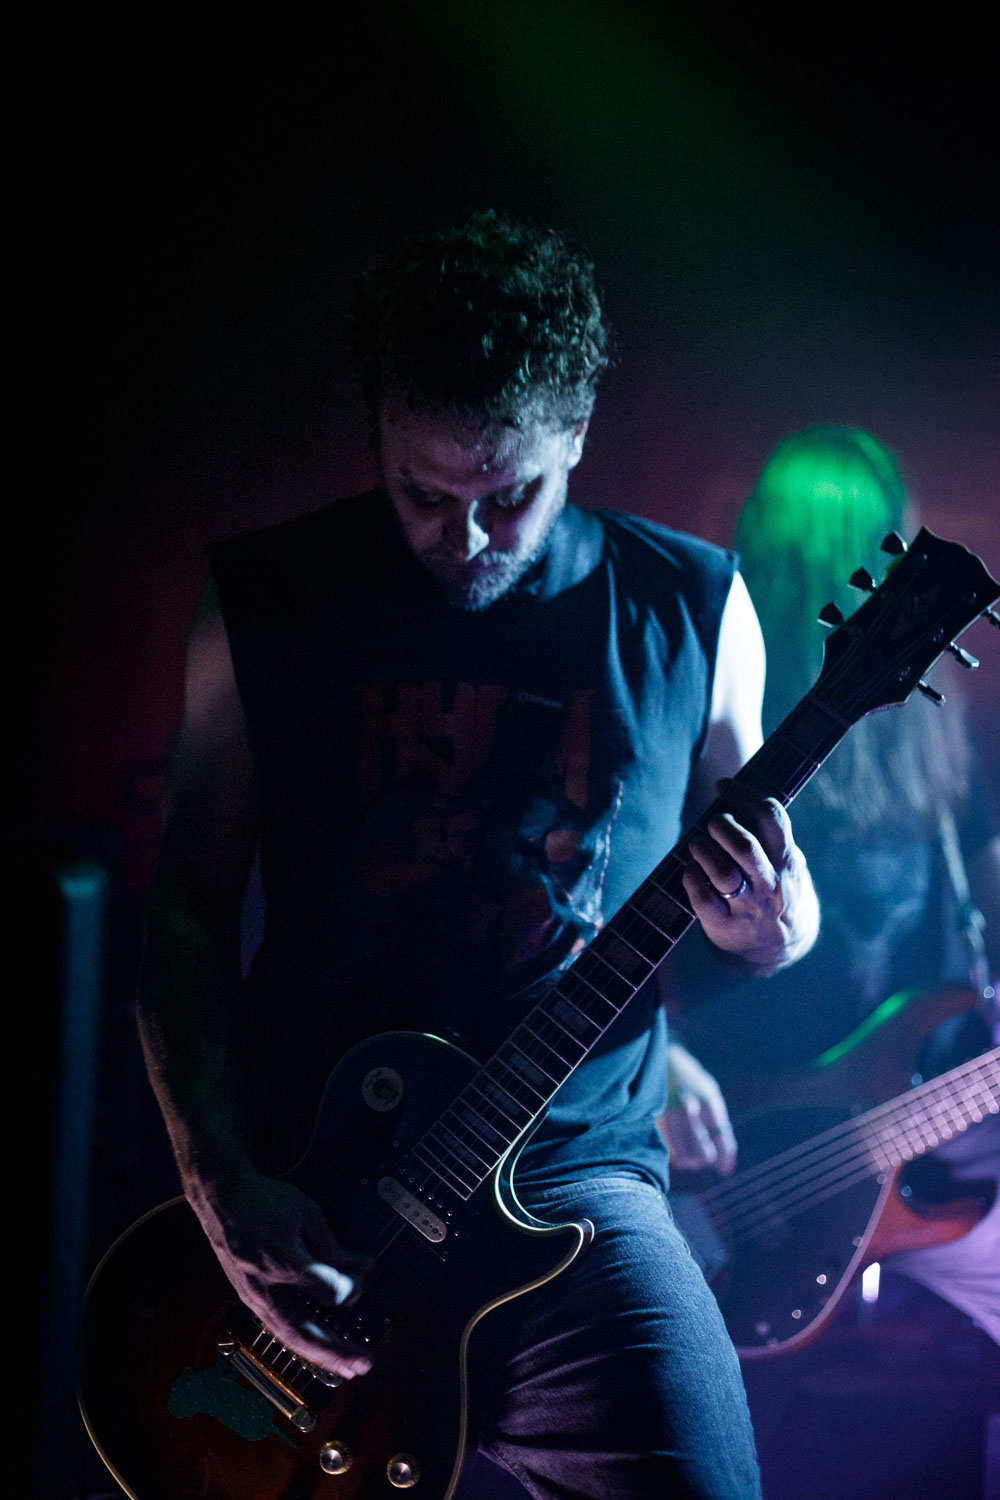 Ba'al at The Outpost in Liverpool on July 11th 2019